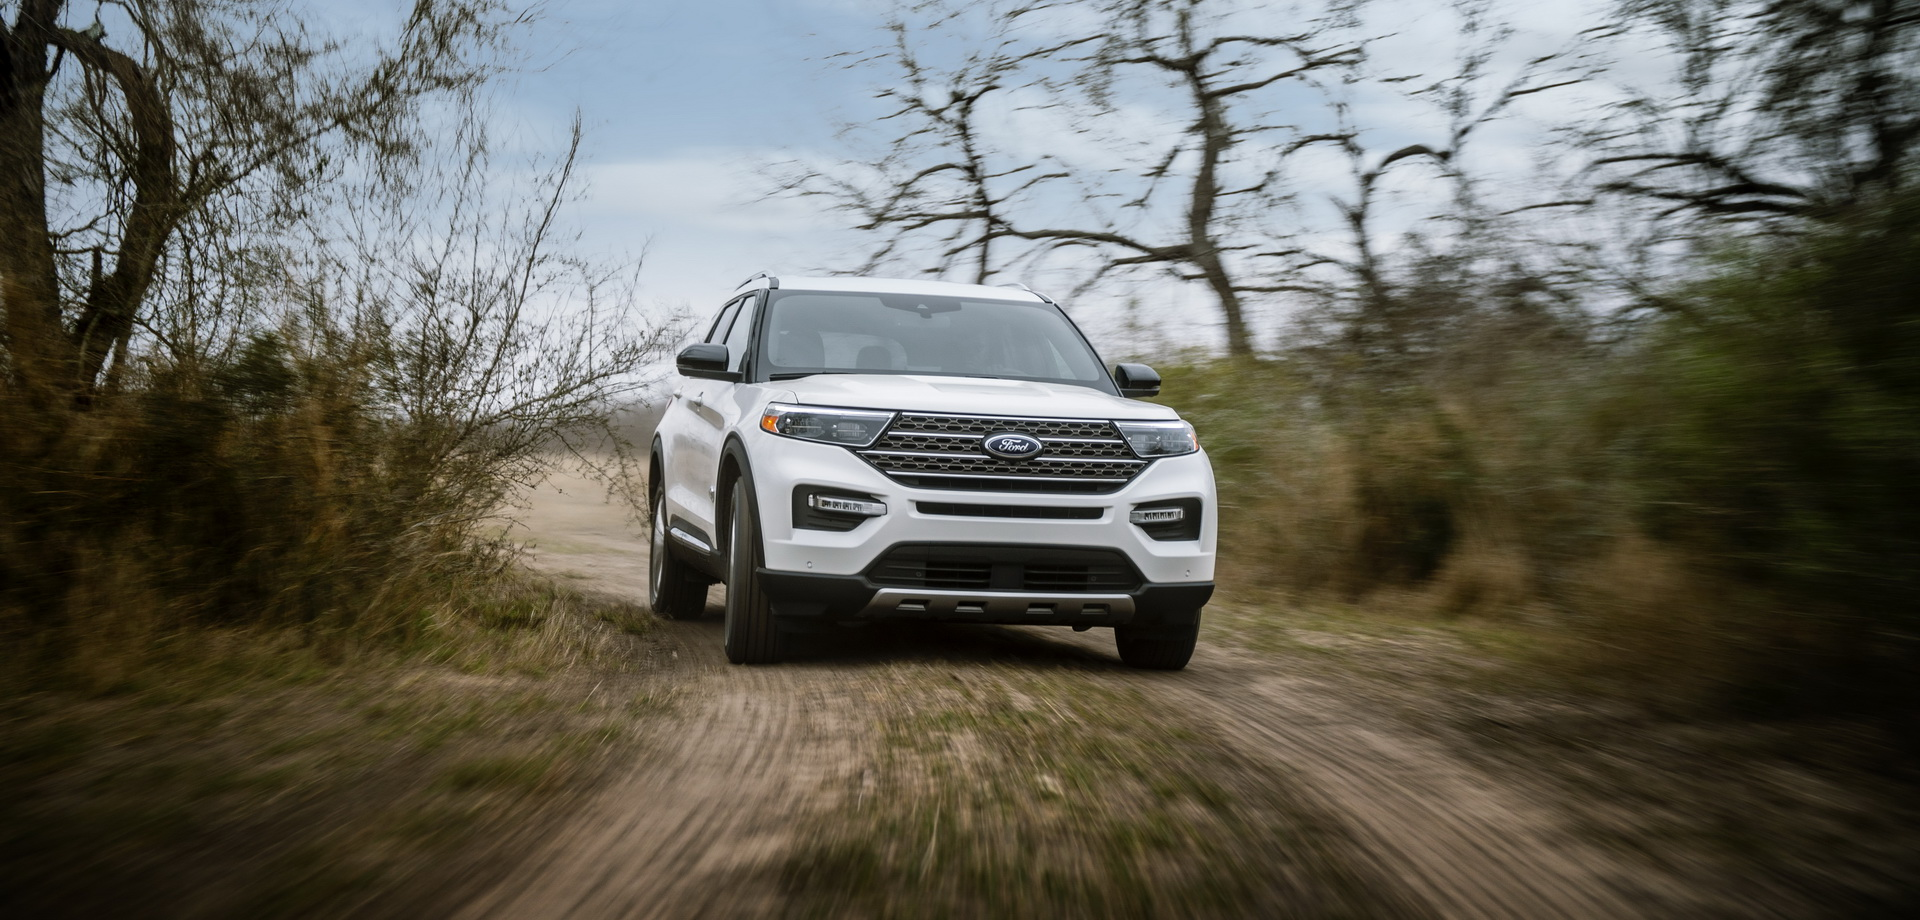 Ford Explorer King Ranch 2021 ra mắt, giá từ 52.350 USD 2021-ford-explorer-king-ranch-03.jpg